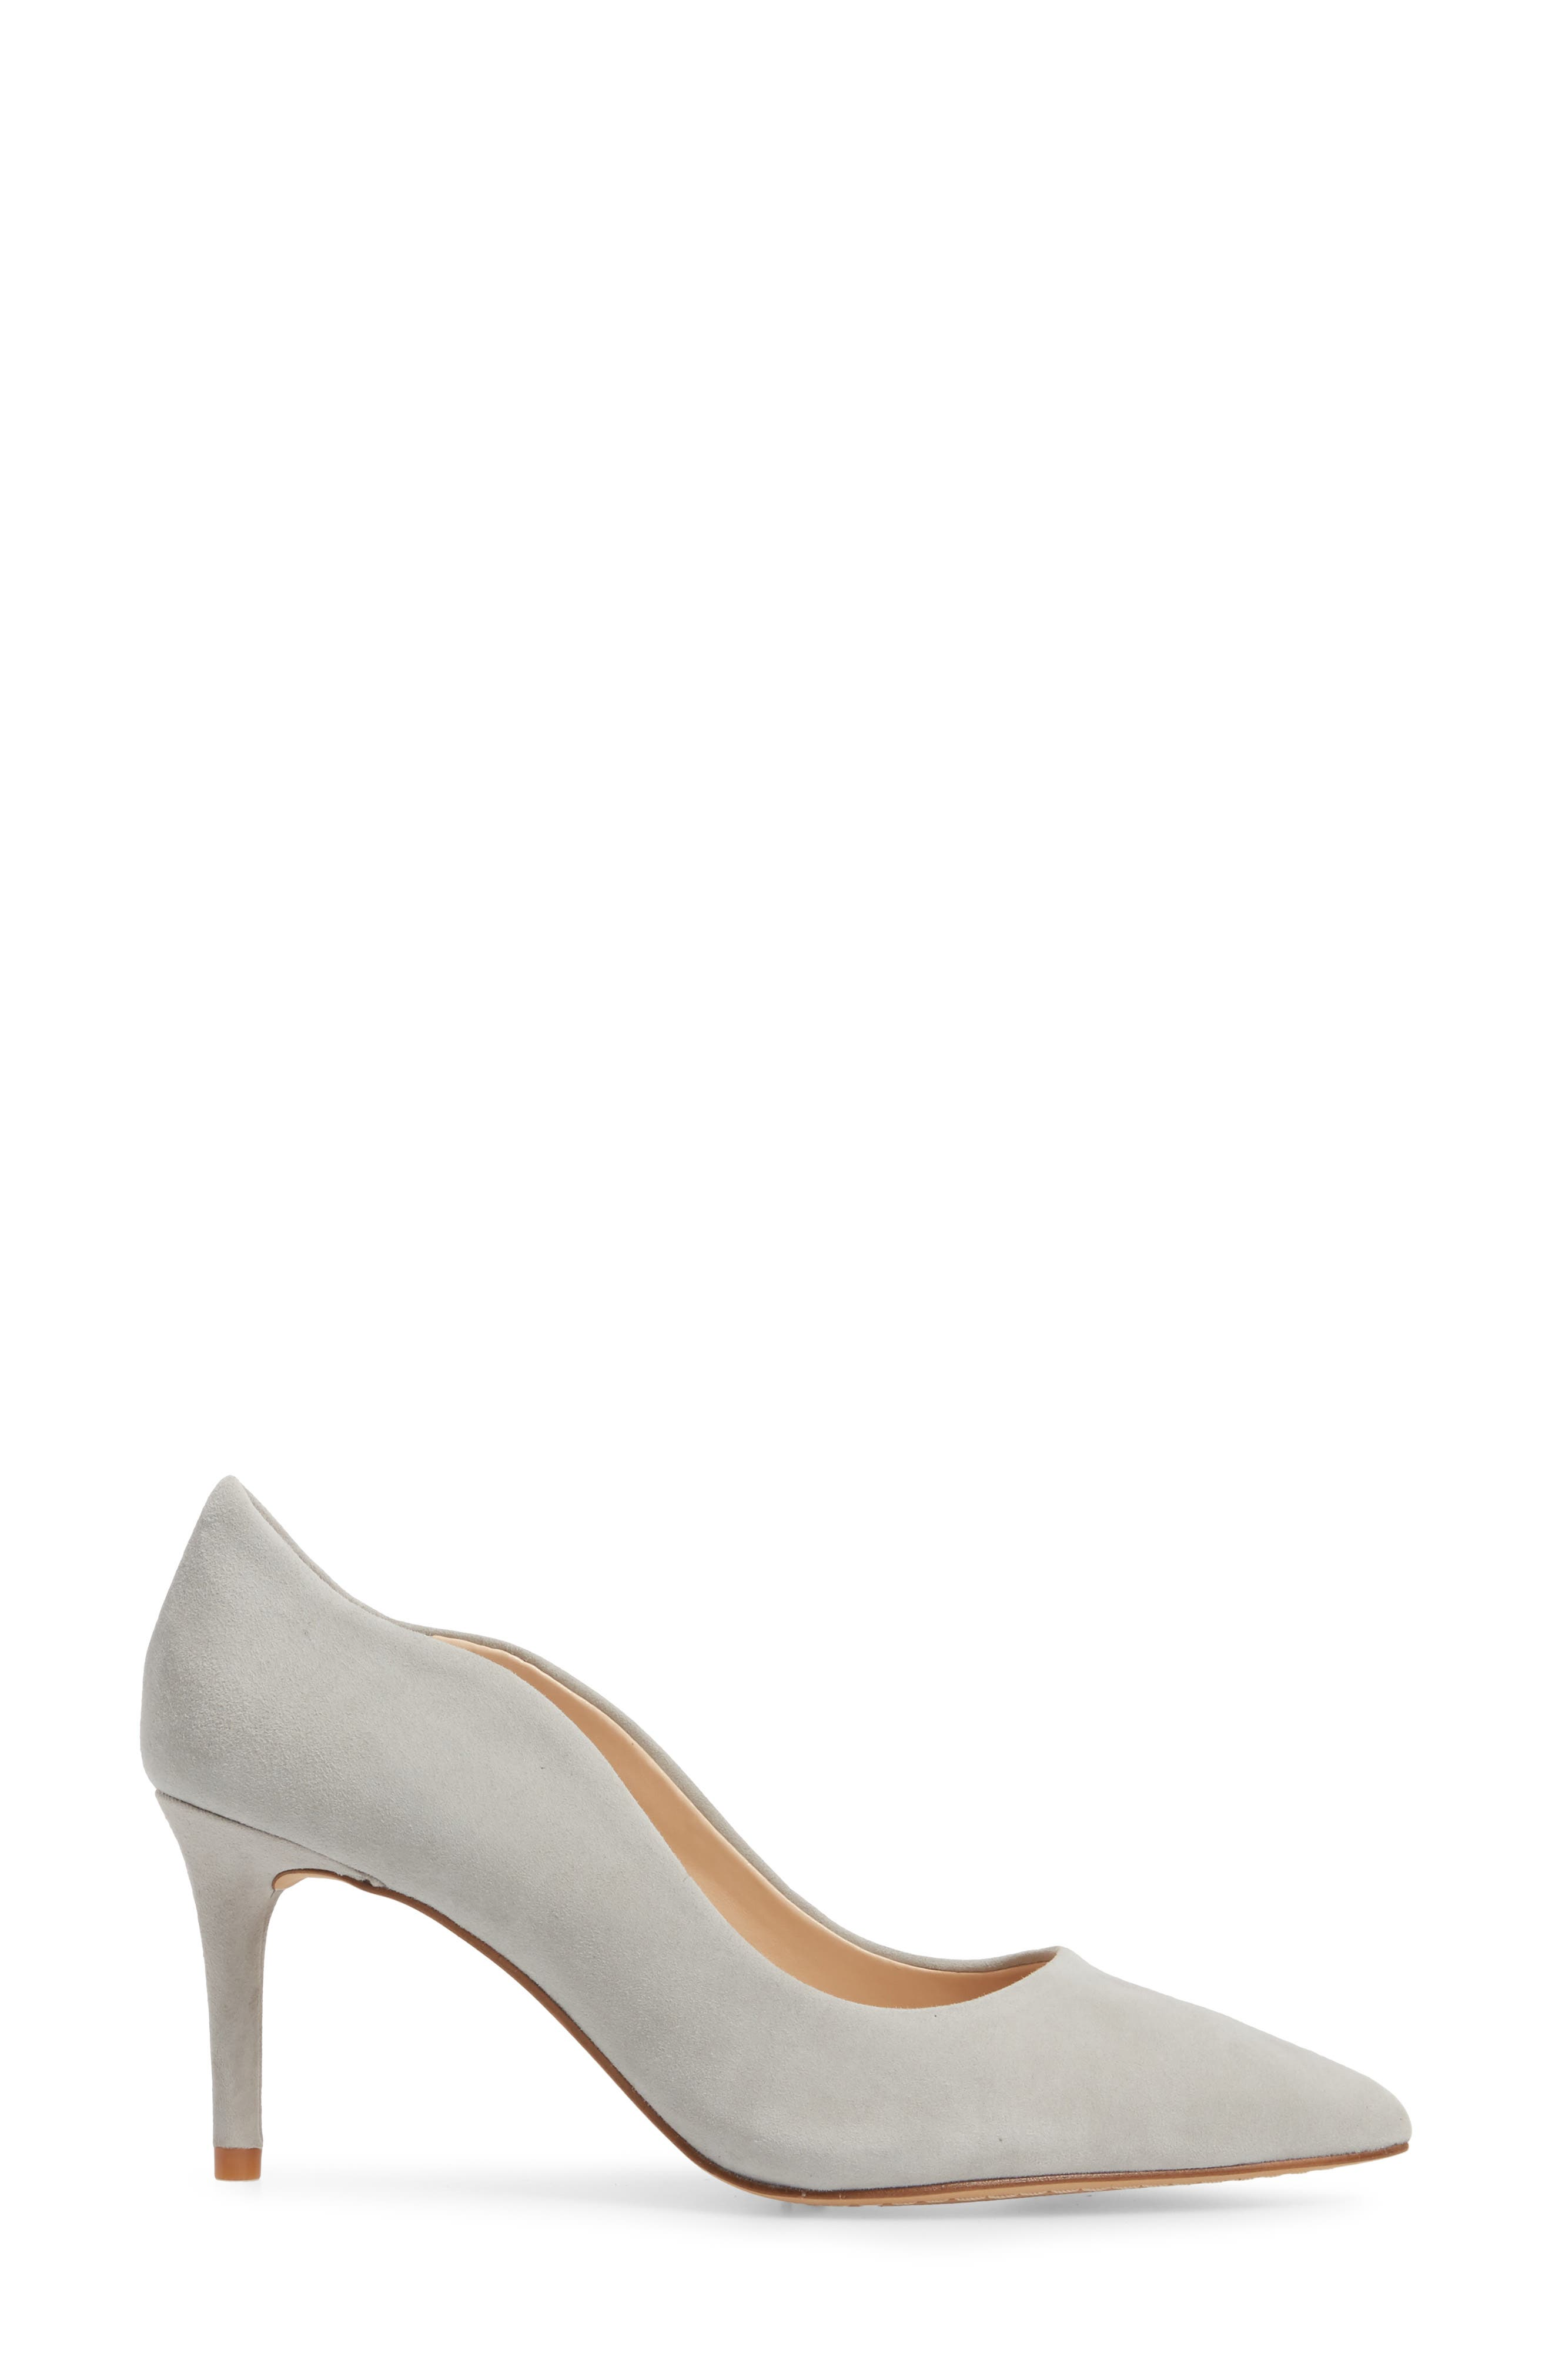 Alternate Image 3  - Vince Camuto Jaynita Pointy Toe Pump (Women)